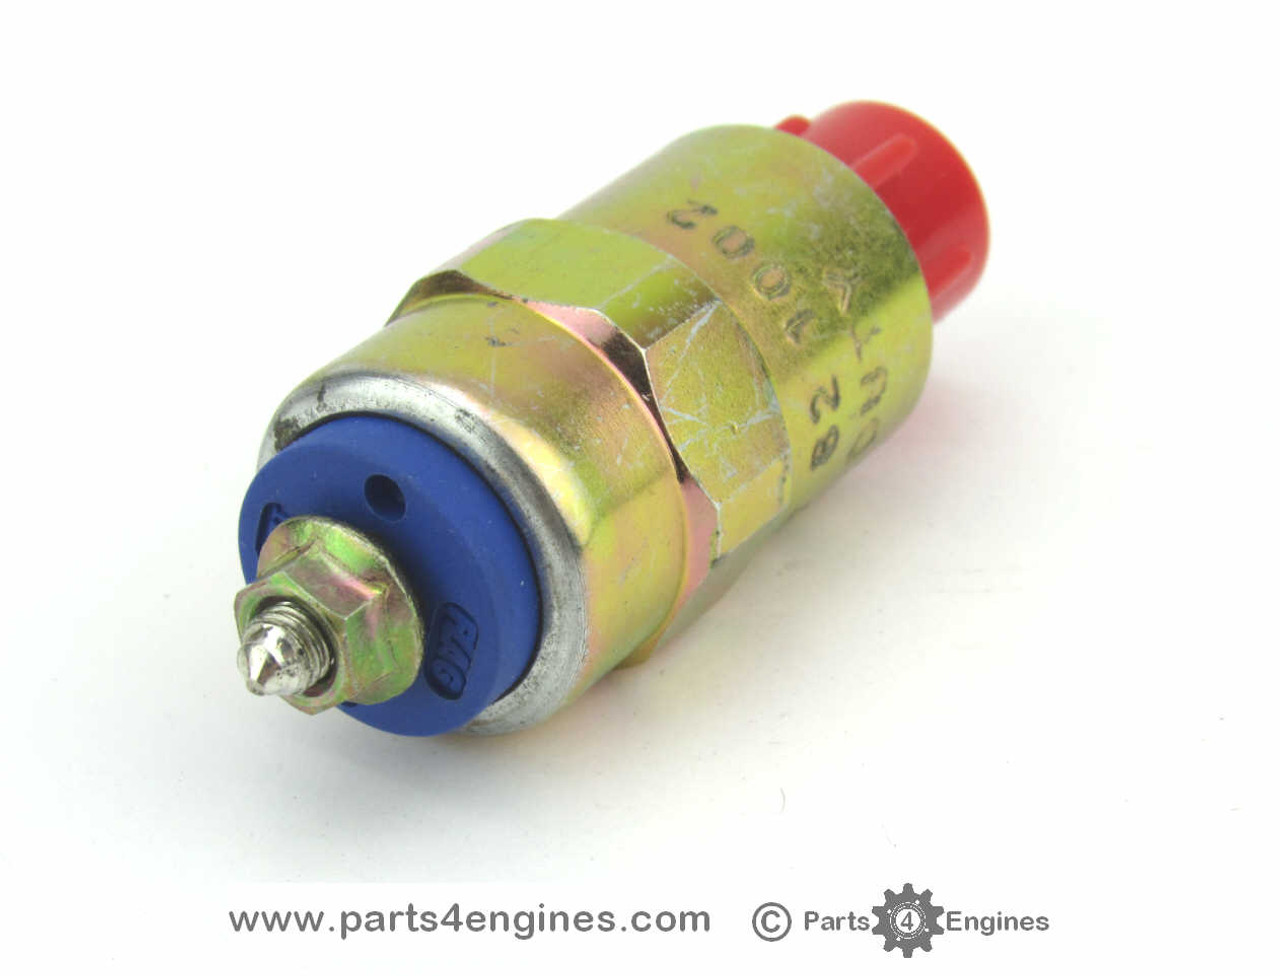 Perkins M90 12V Stop Solenoid from parts4engines.com - single screw connection